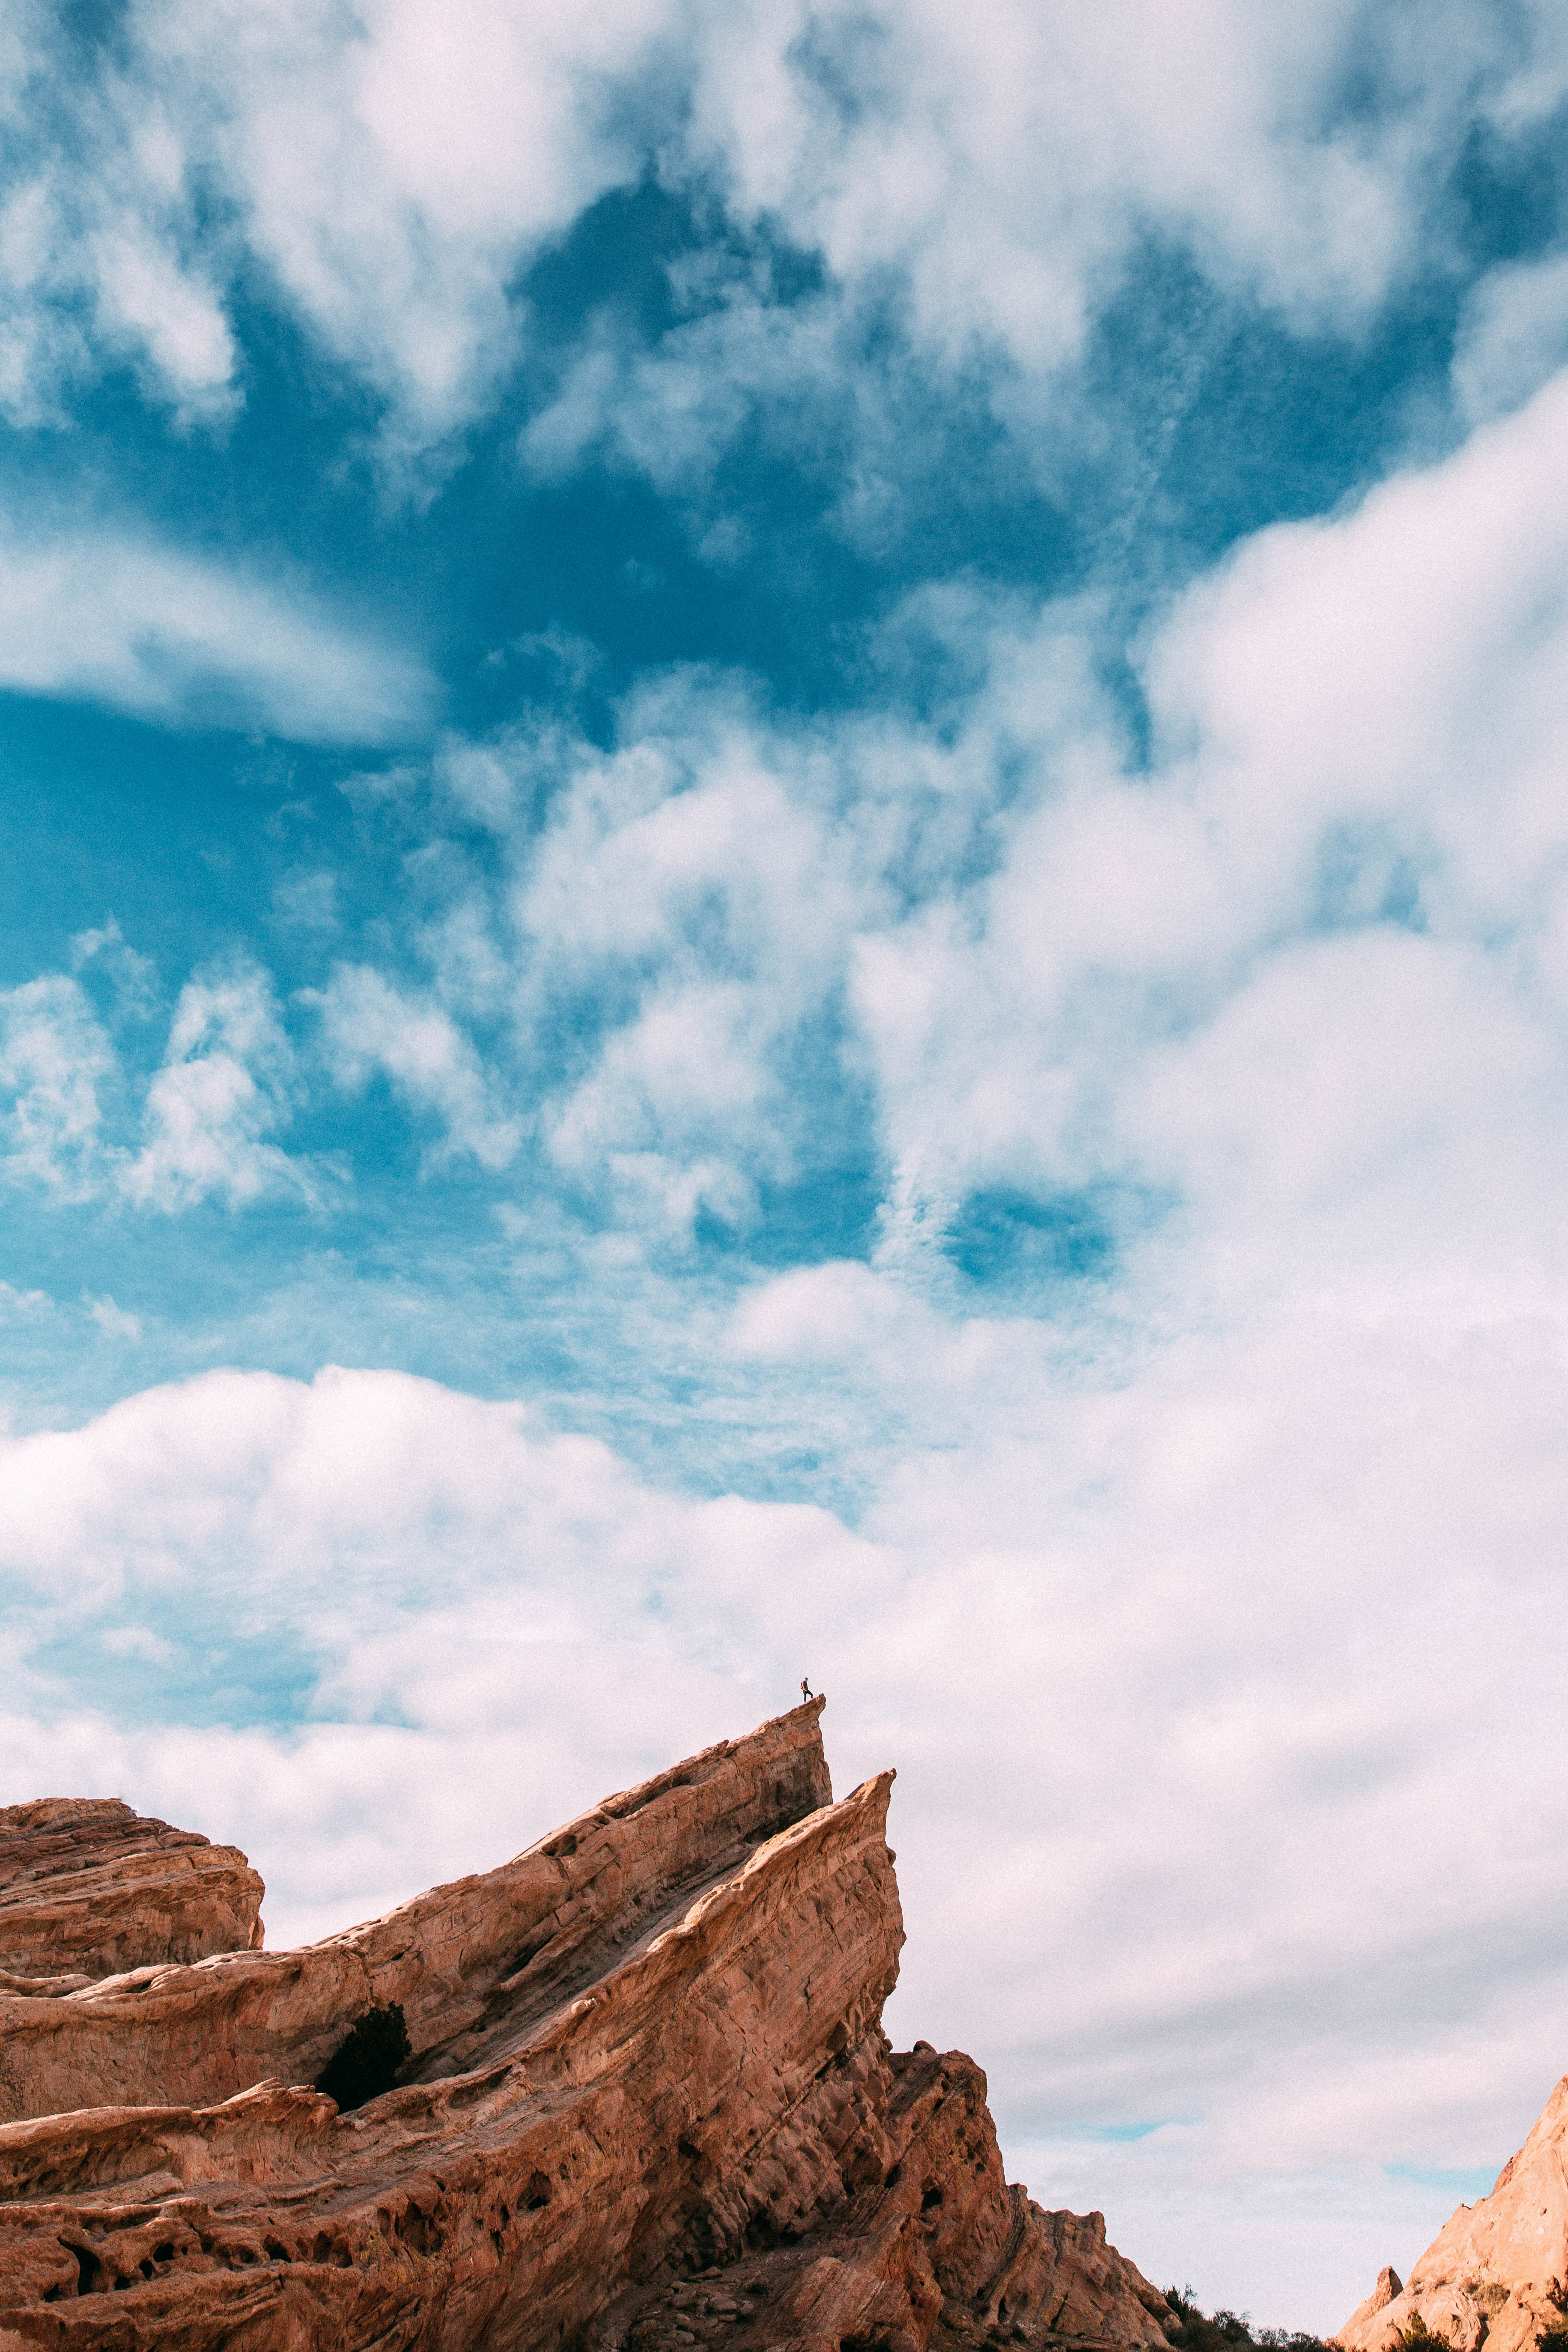 A distant silhouette on a hiker on top of a slanted orange rock ledge under a cloudy azure sky